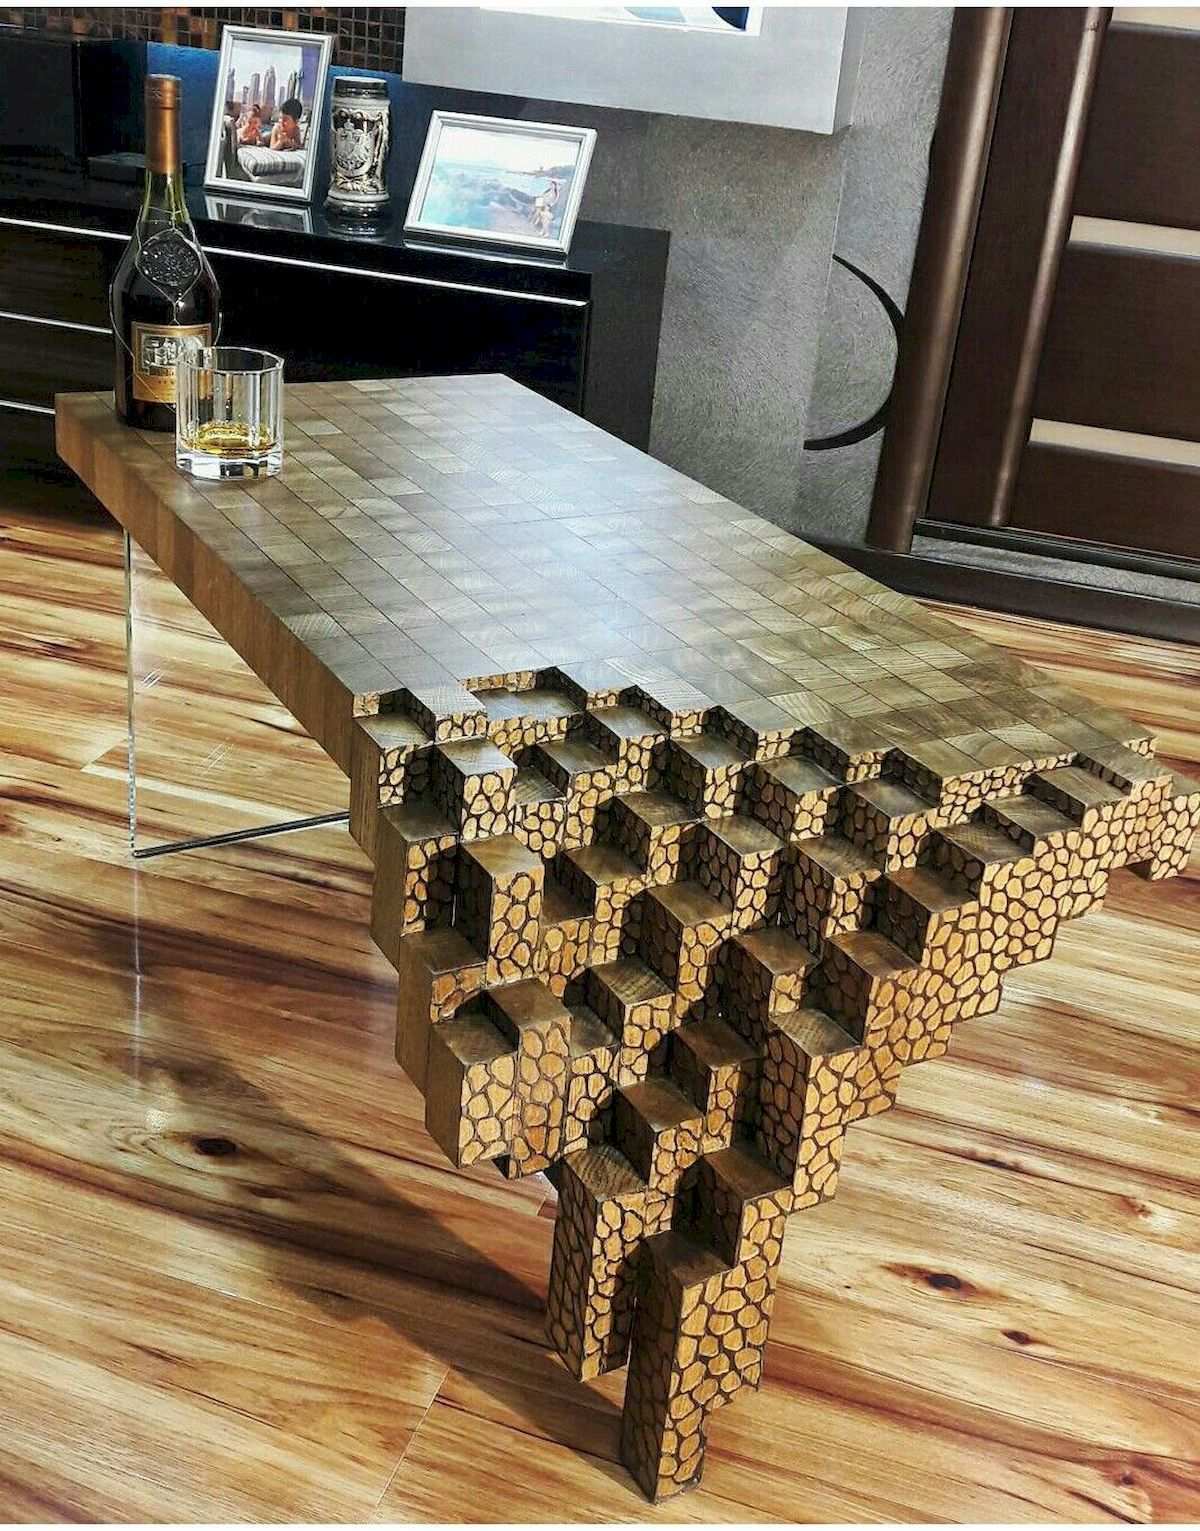 Astounding Coffee Table Ideas For Your Living Room Living Room Wood Home Interior And Landscaping Oversignezvosmurscom